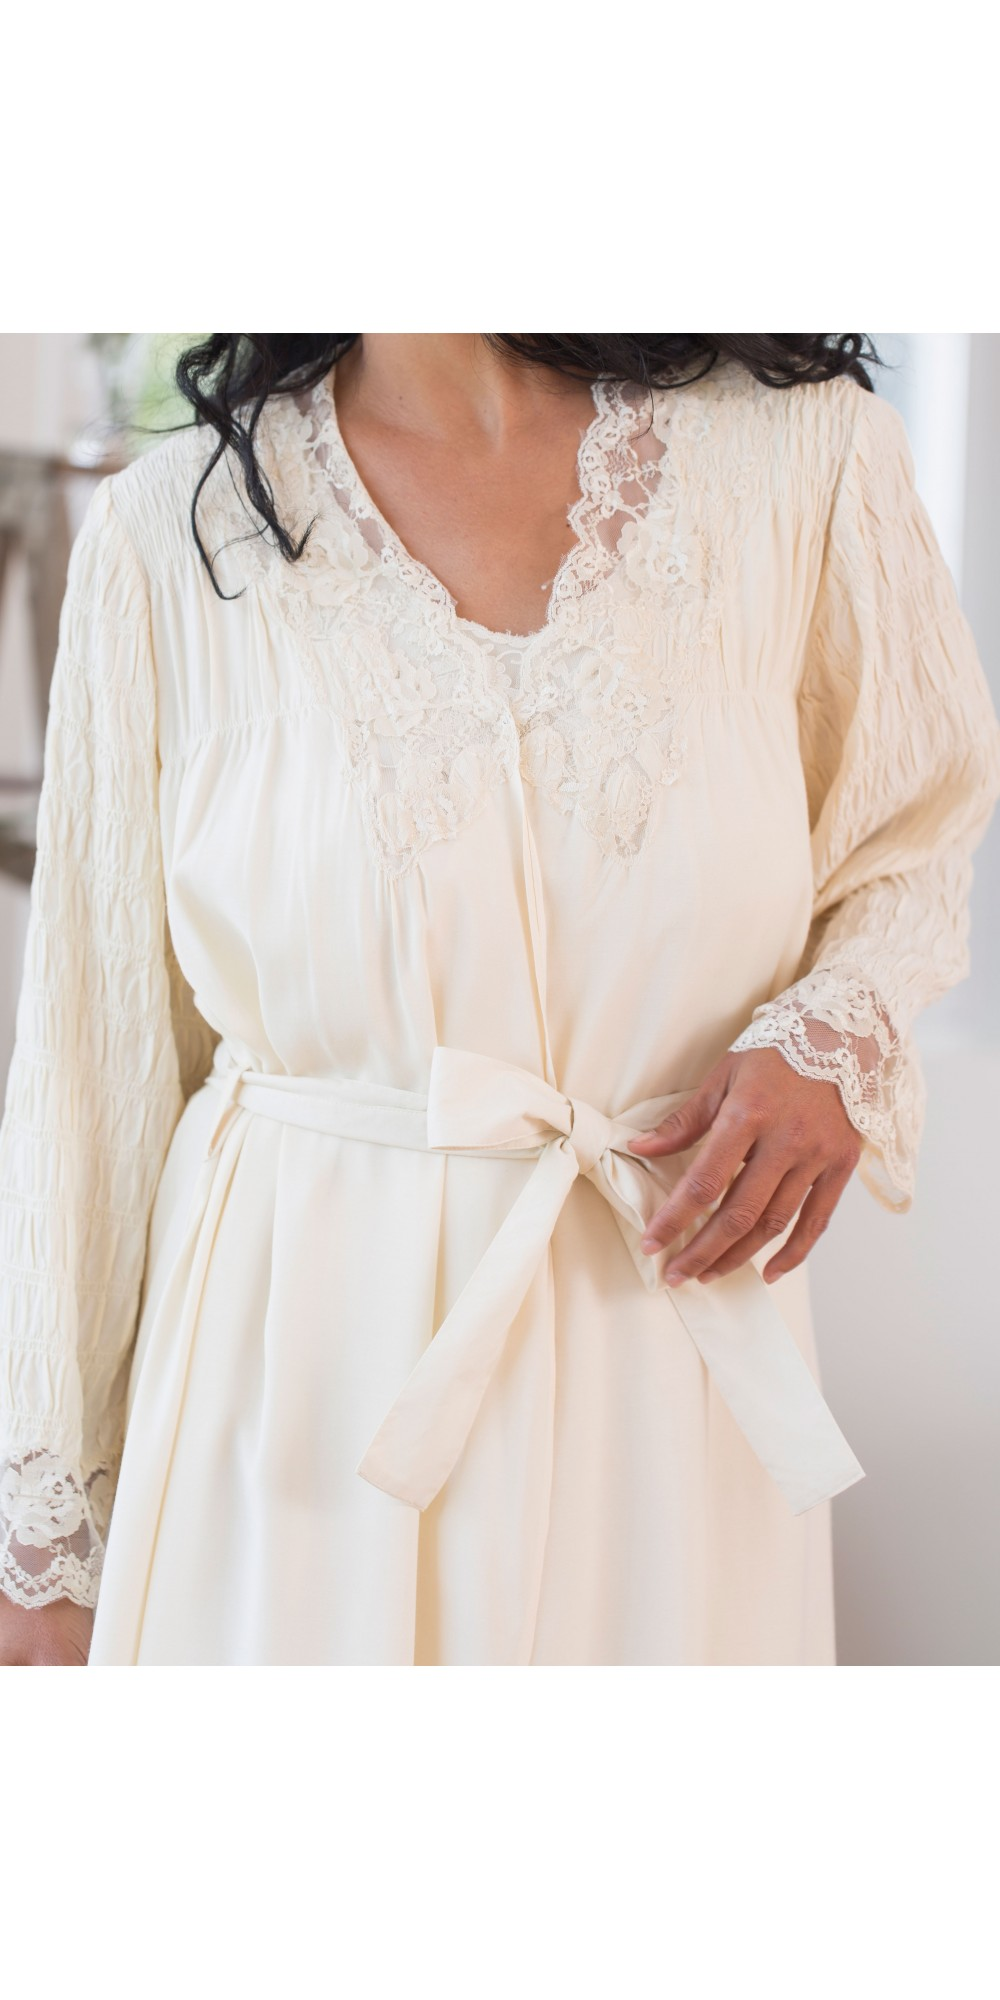 Vintage Inspired Dressing Gown in Ecru by April Cornell